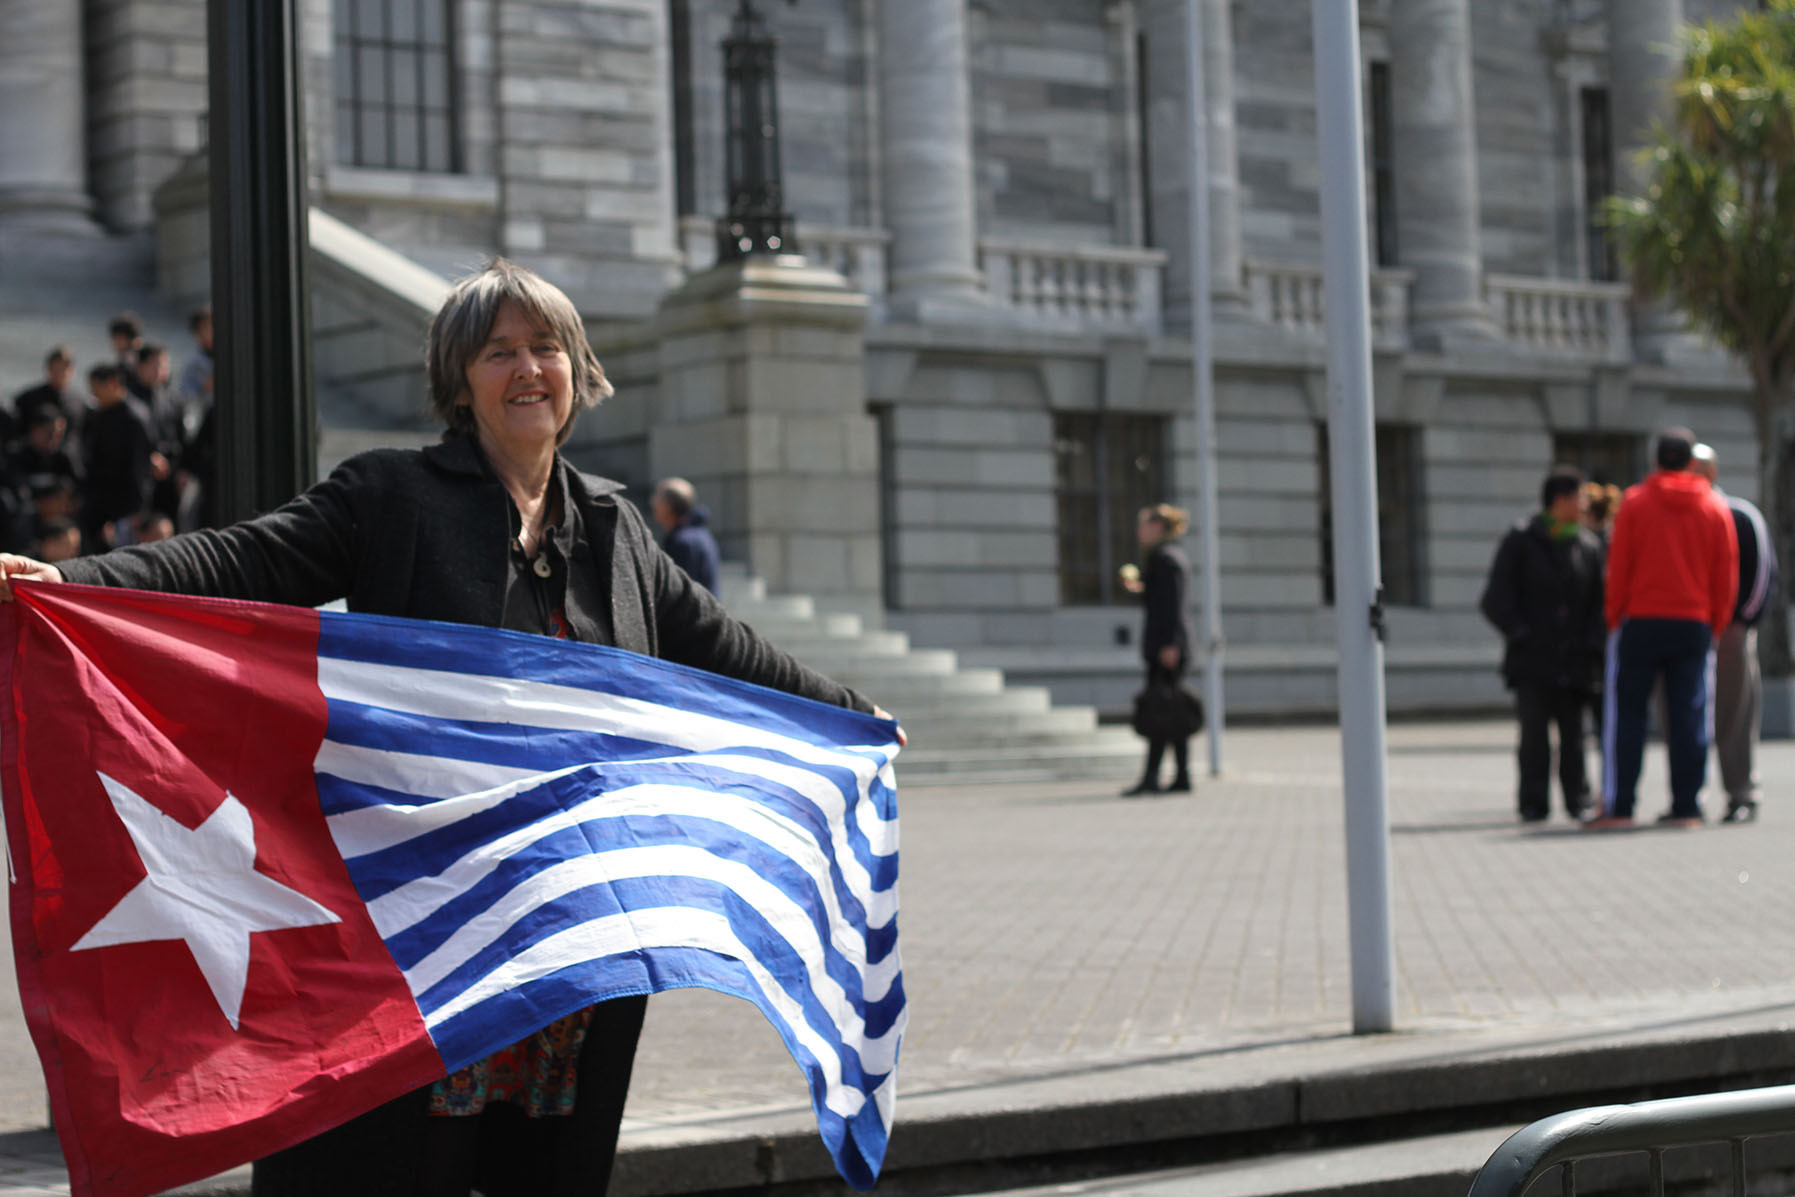 Catherine-Delahunty-with-West-Papua-flag-the-Morning-Star